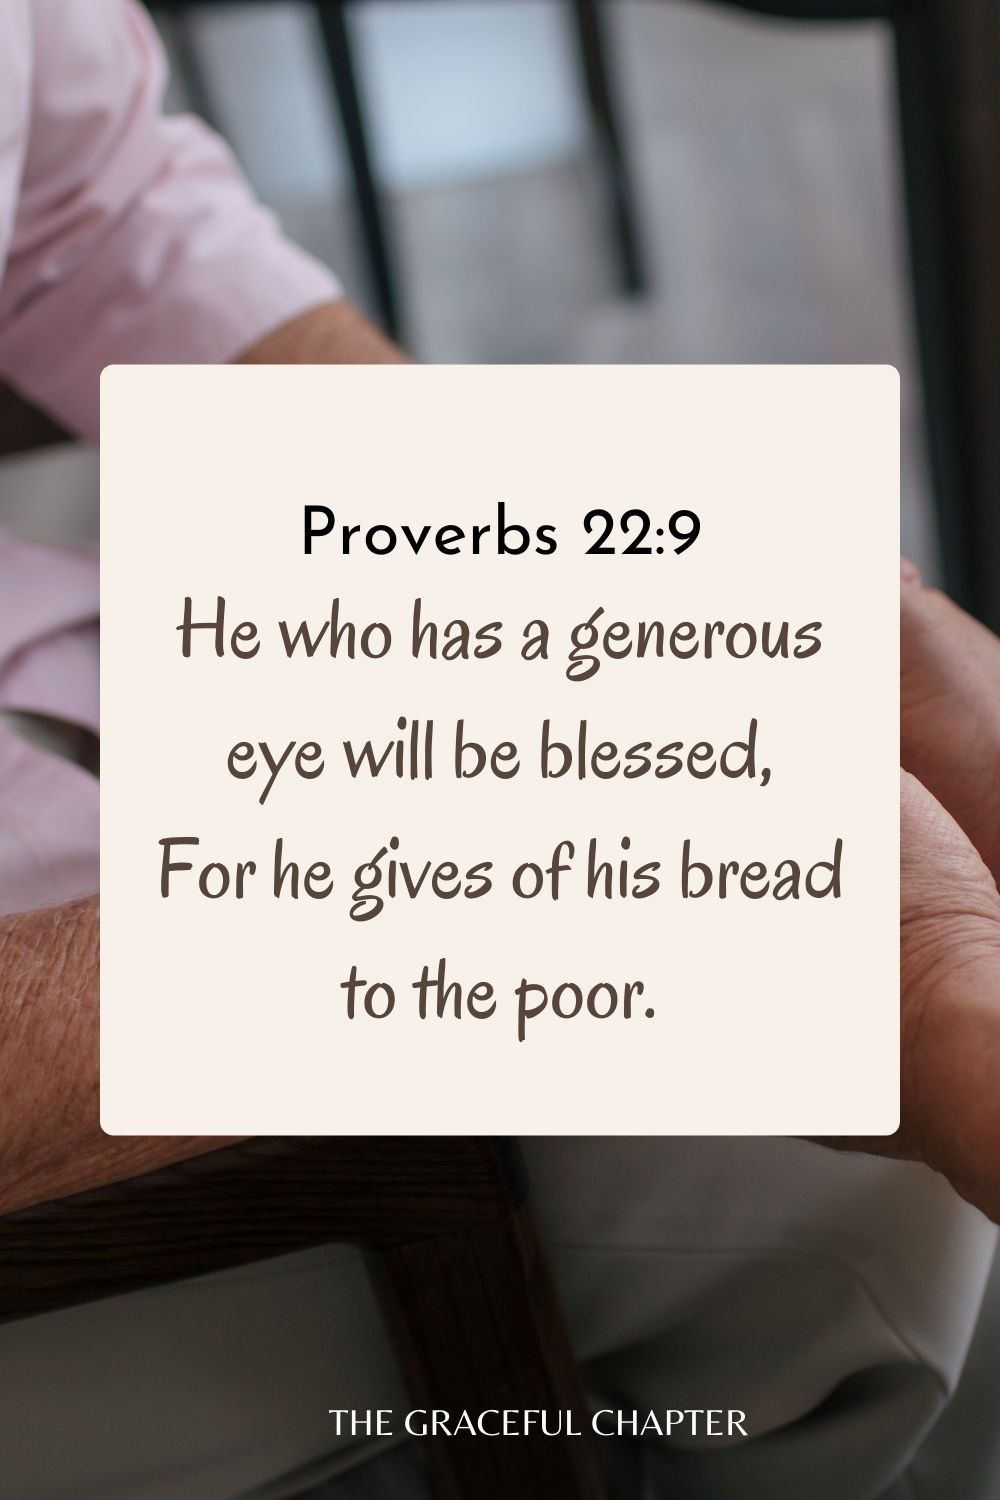 He who has a generous eye will be blessed, For he gives of his bread to the poor. Proverbs 22:9